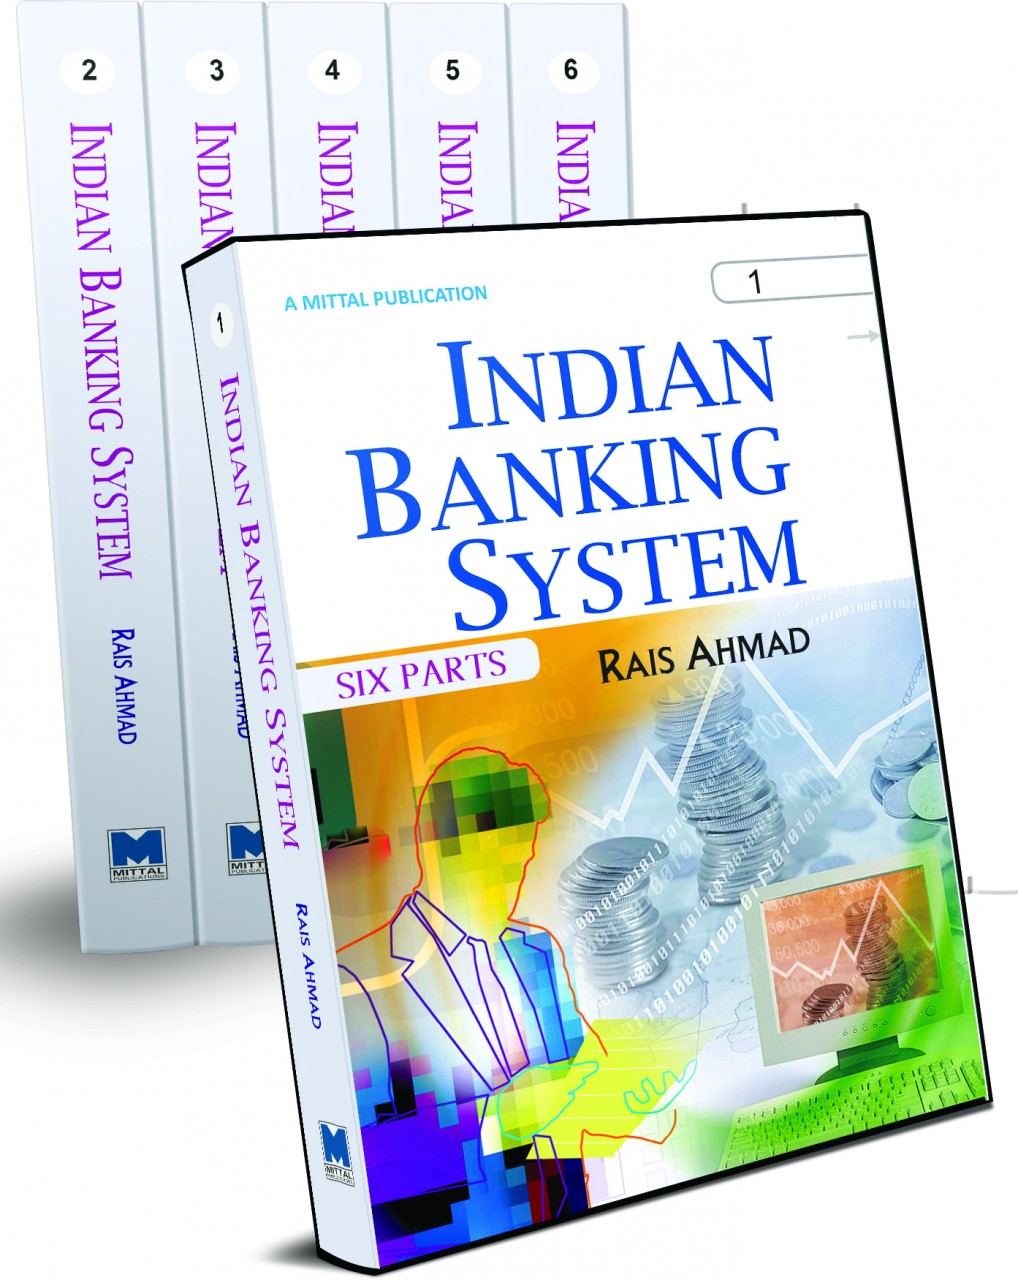 Indian Banking System (6 Parts)